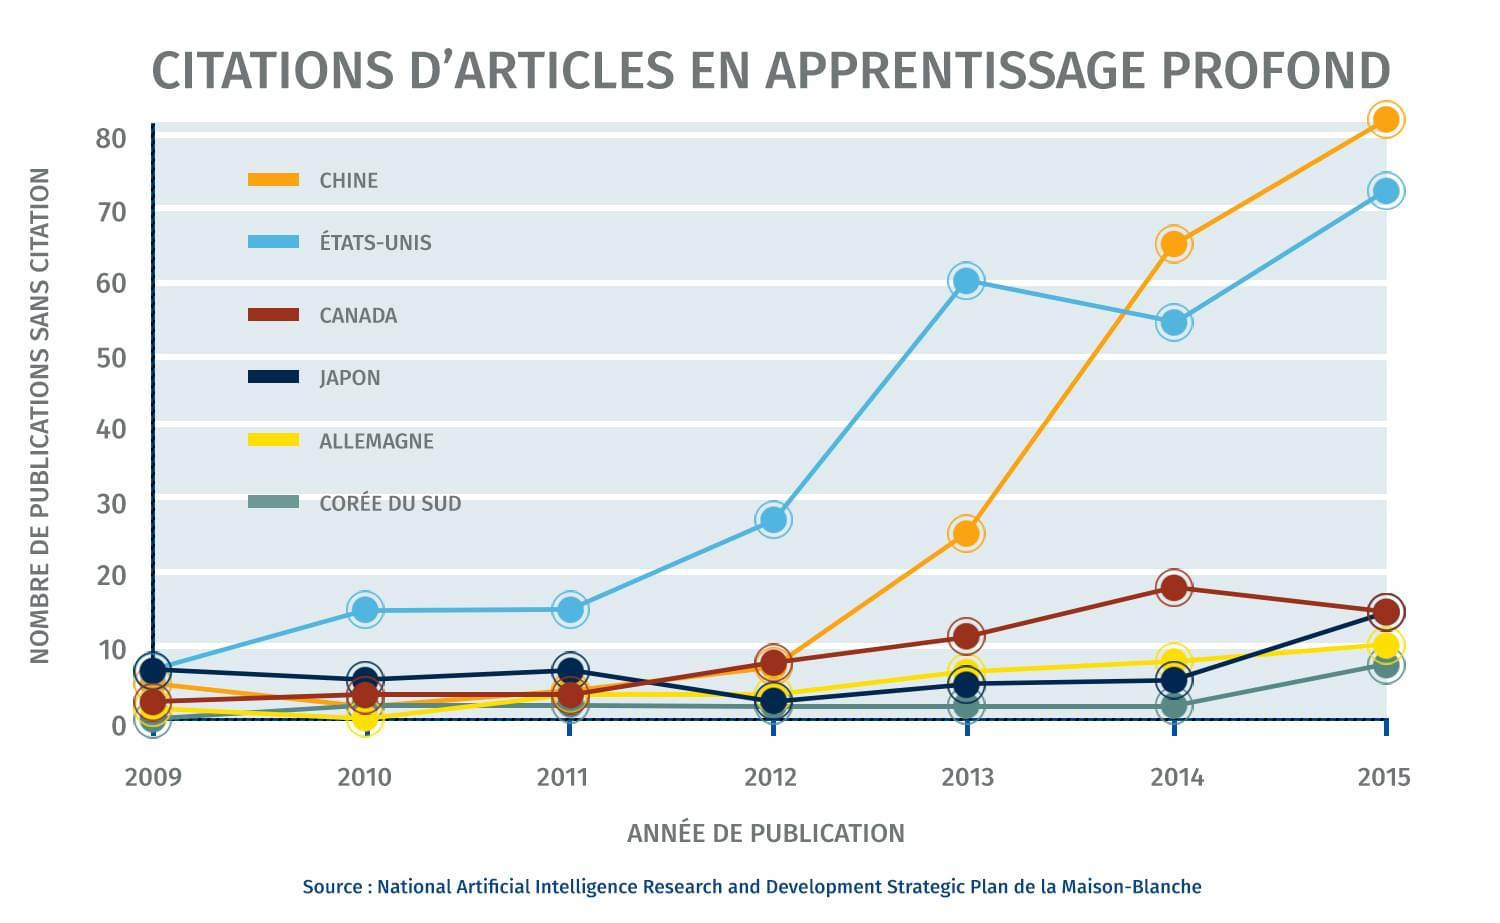 Citations d'articles en apprentissage profond